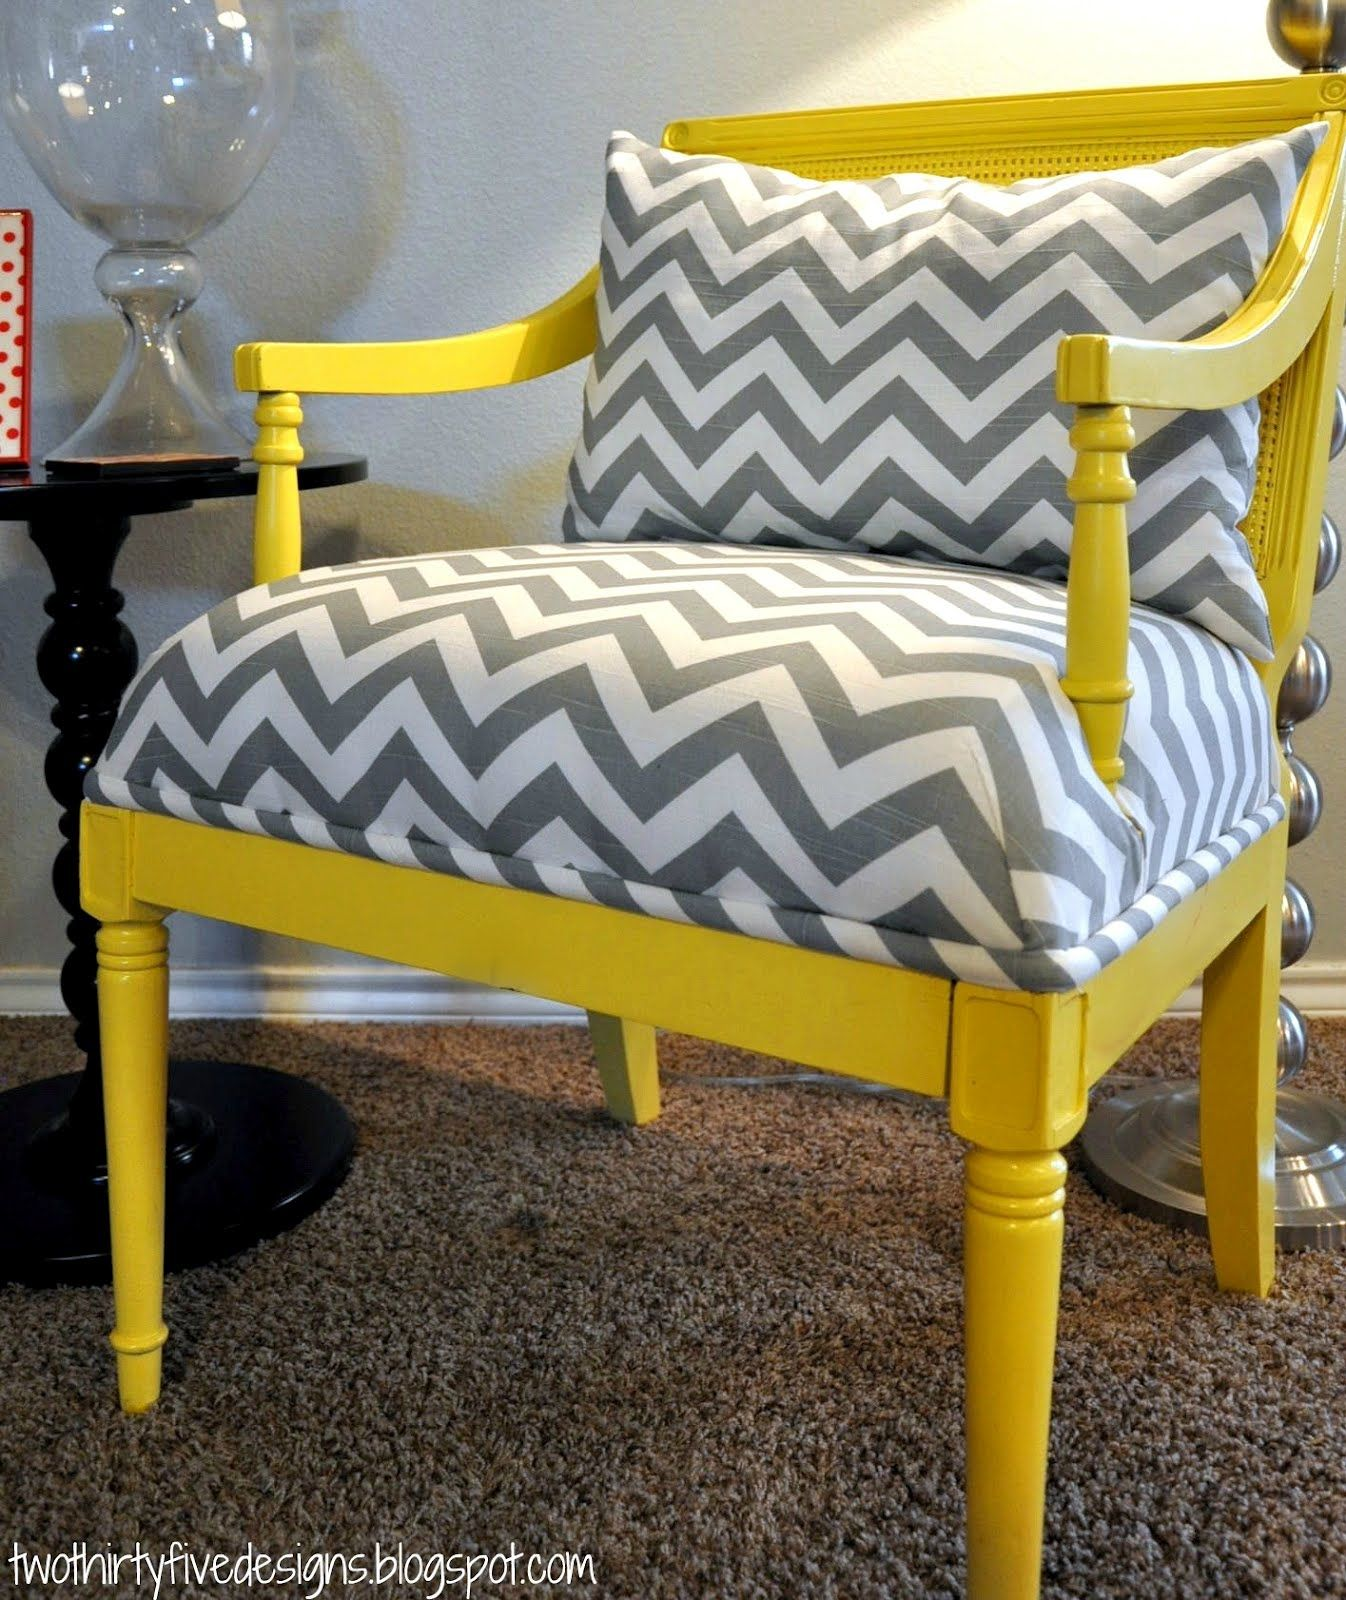 Chair redo love the grey chevron fabric and yellow paint New